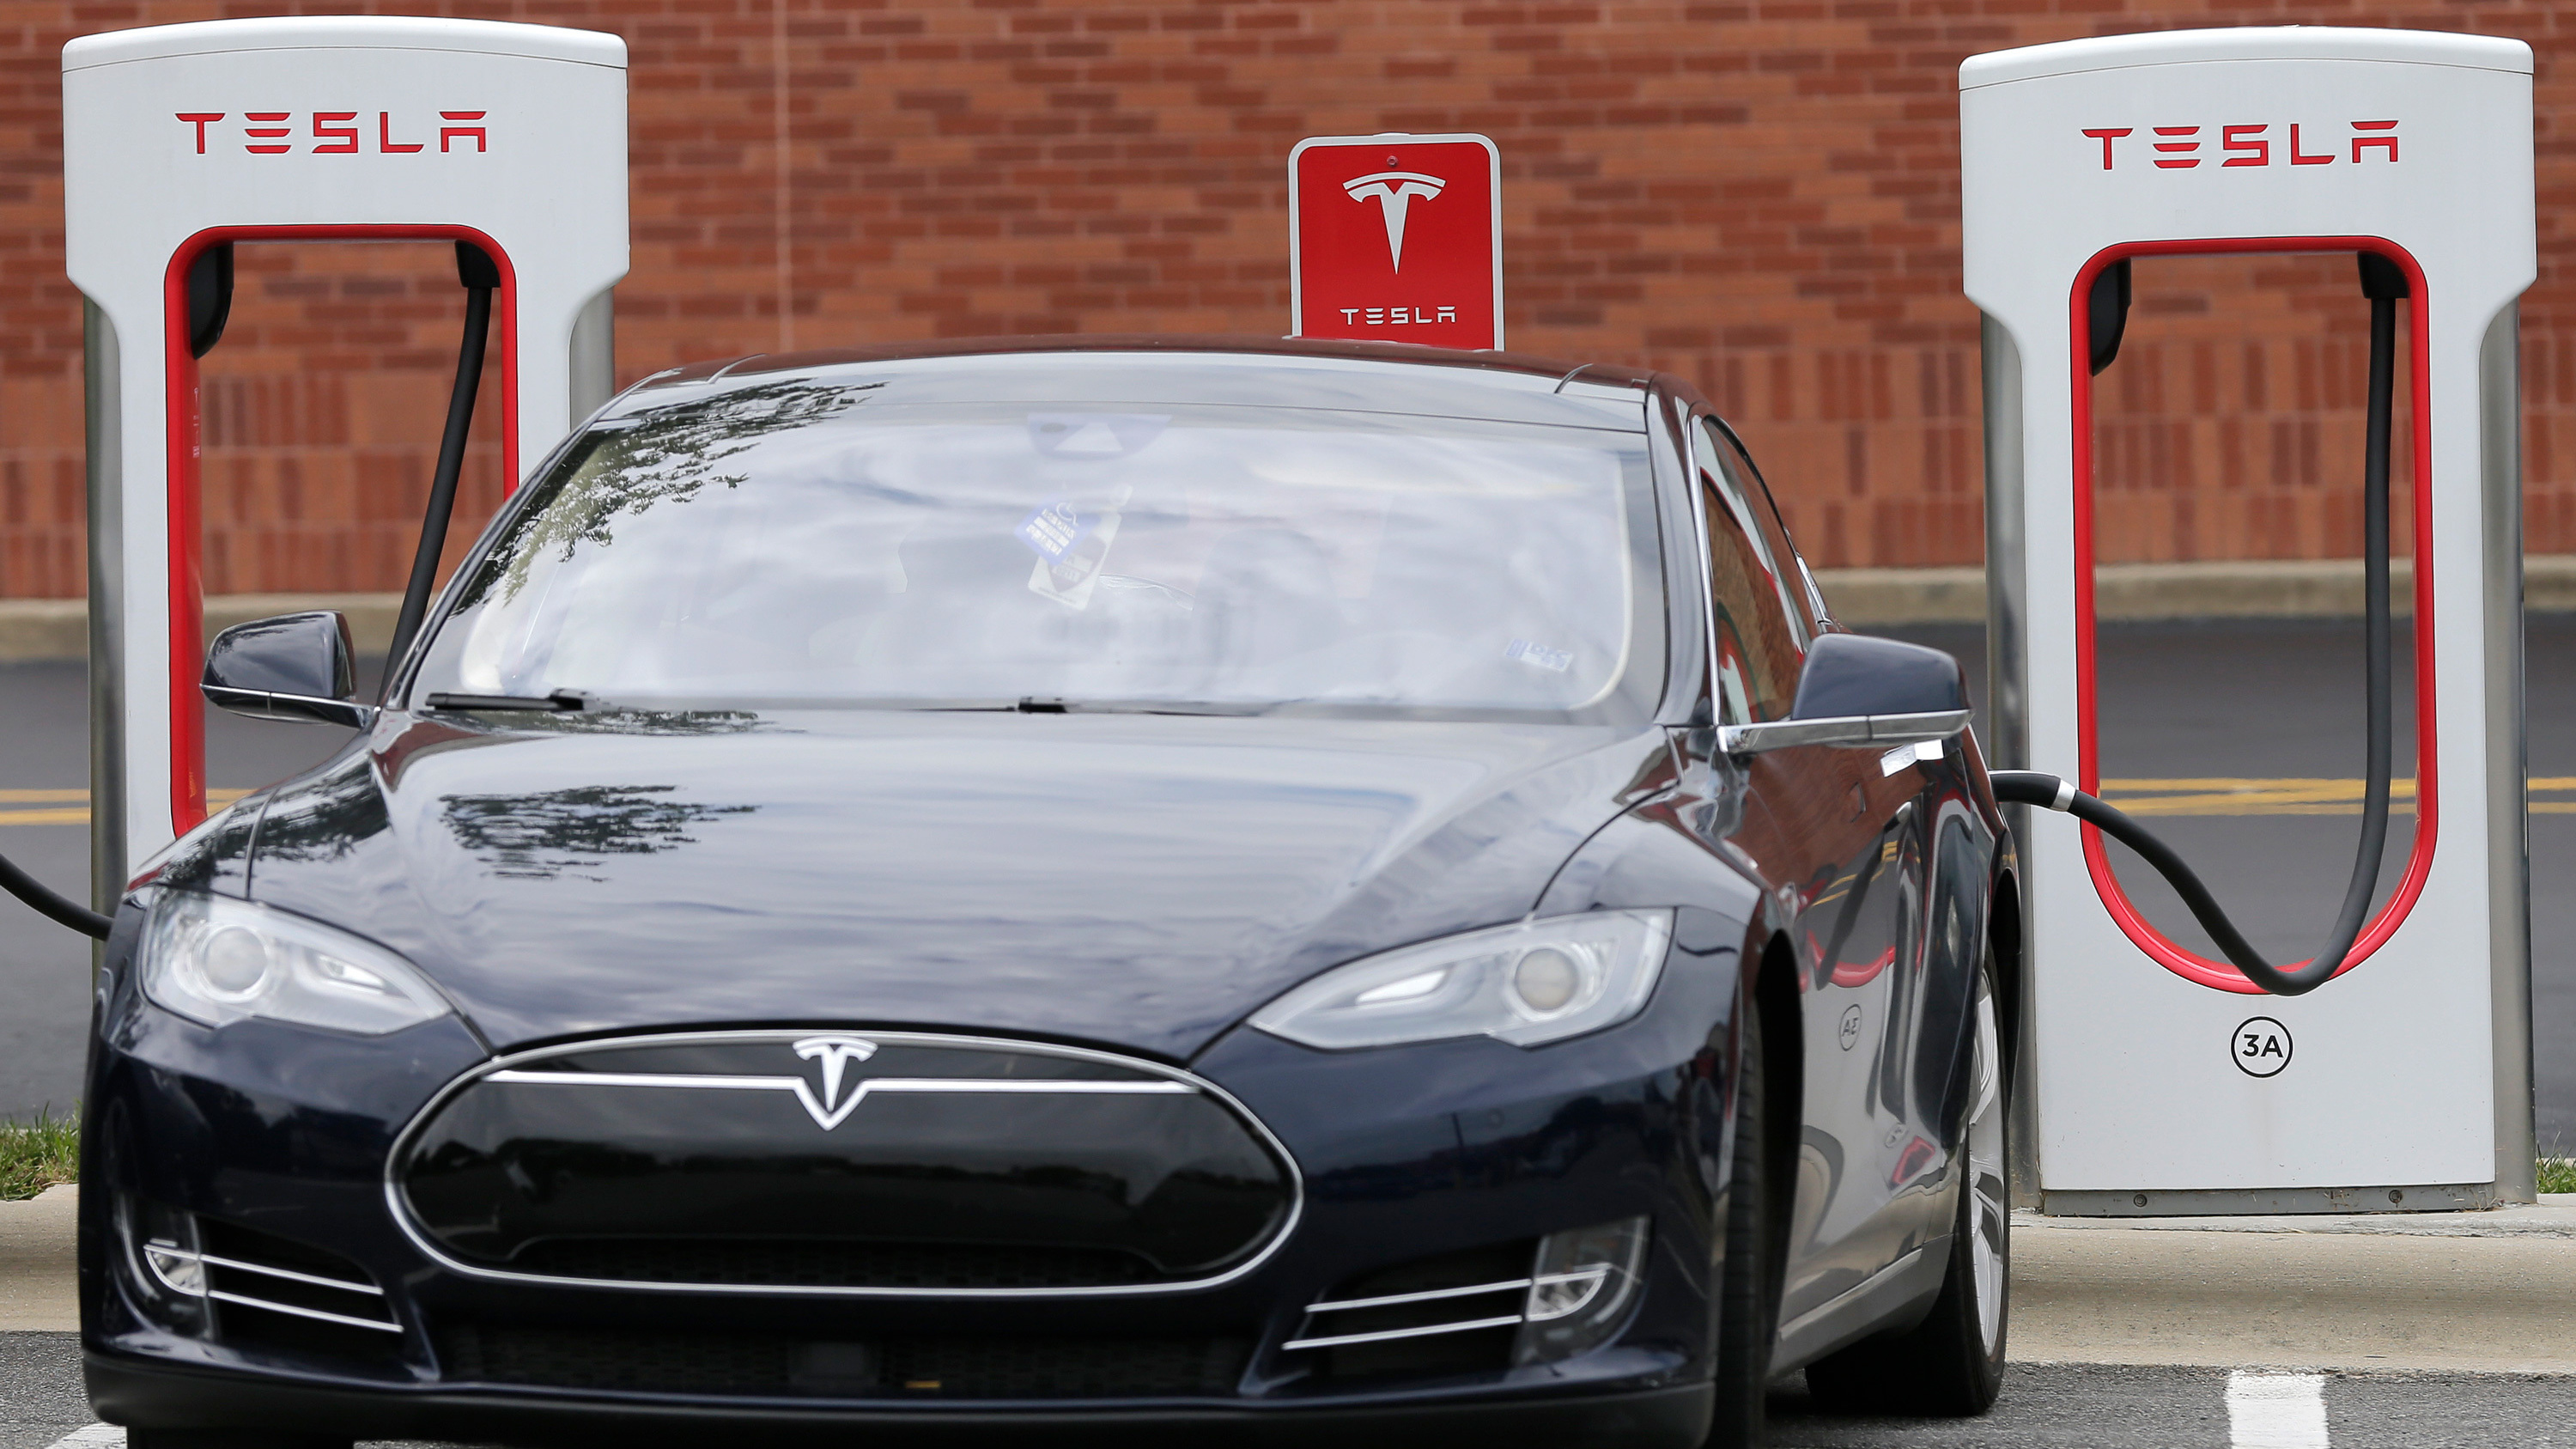 To help Floridians flee Irma, Tesla remotely extended range for free